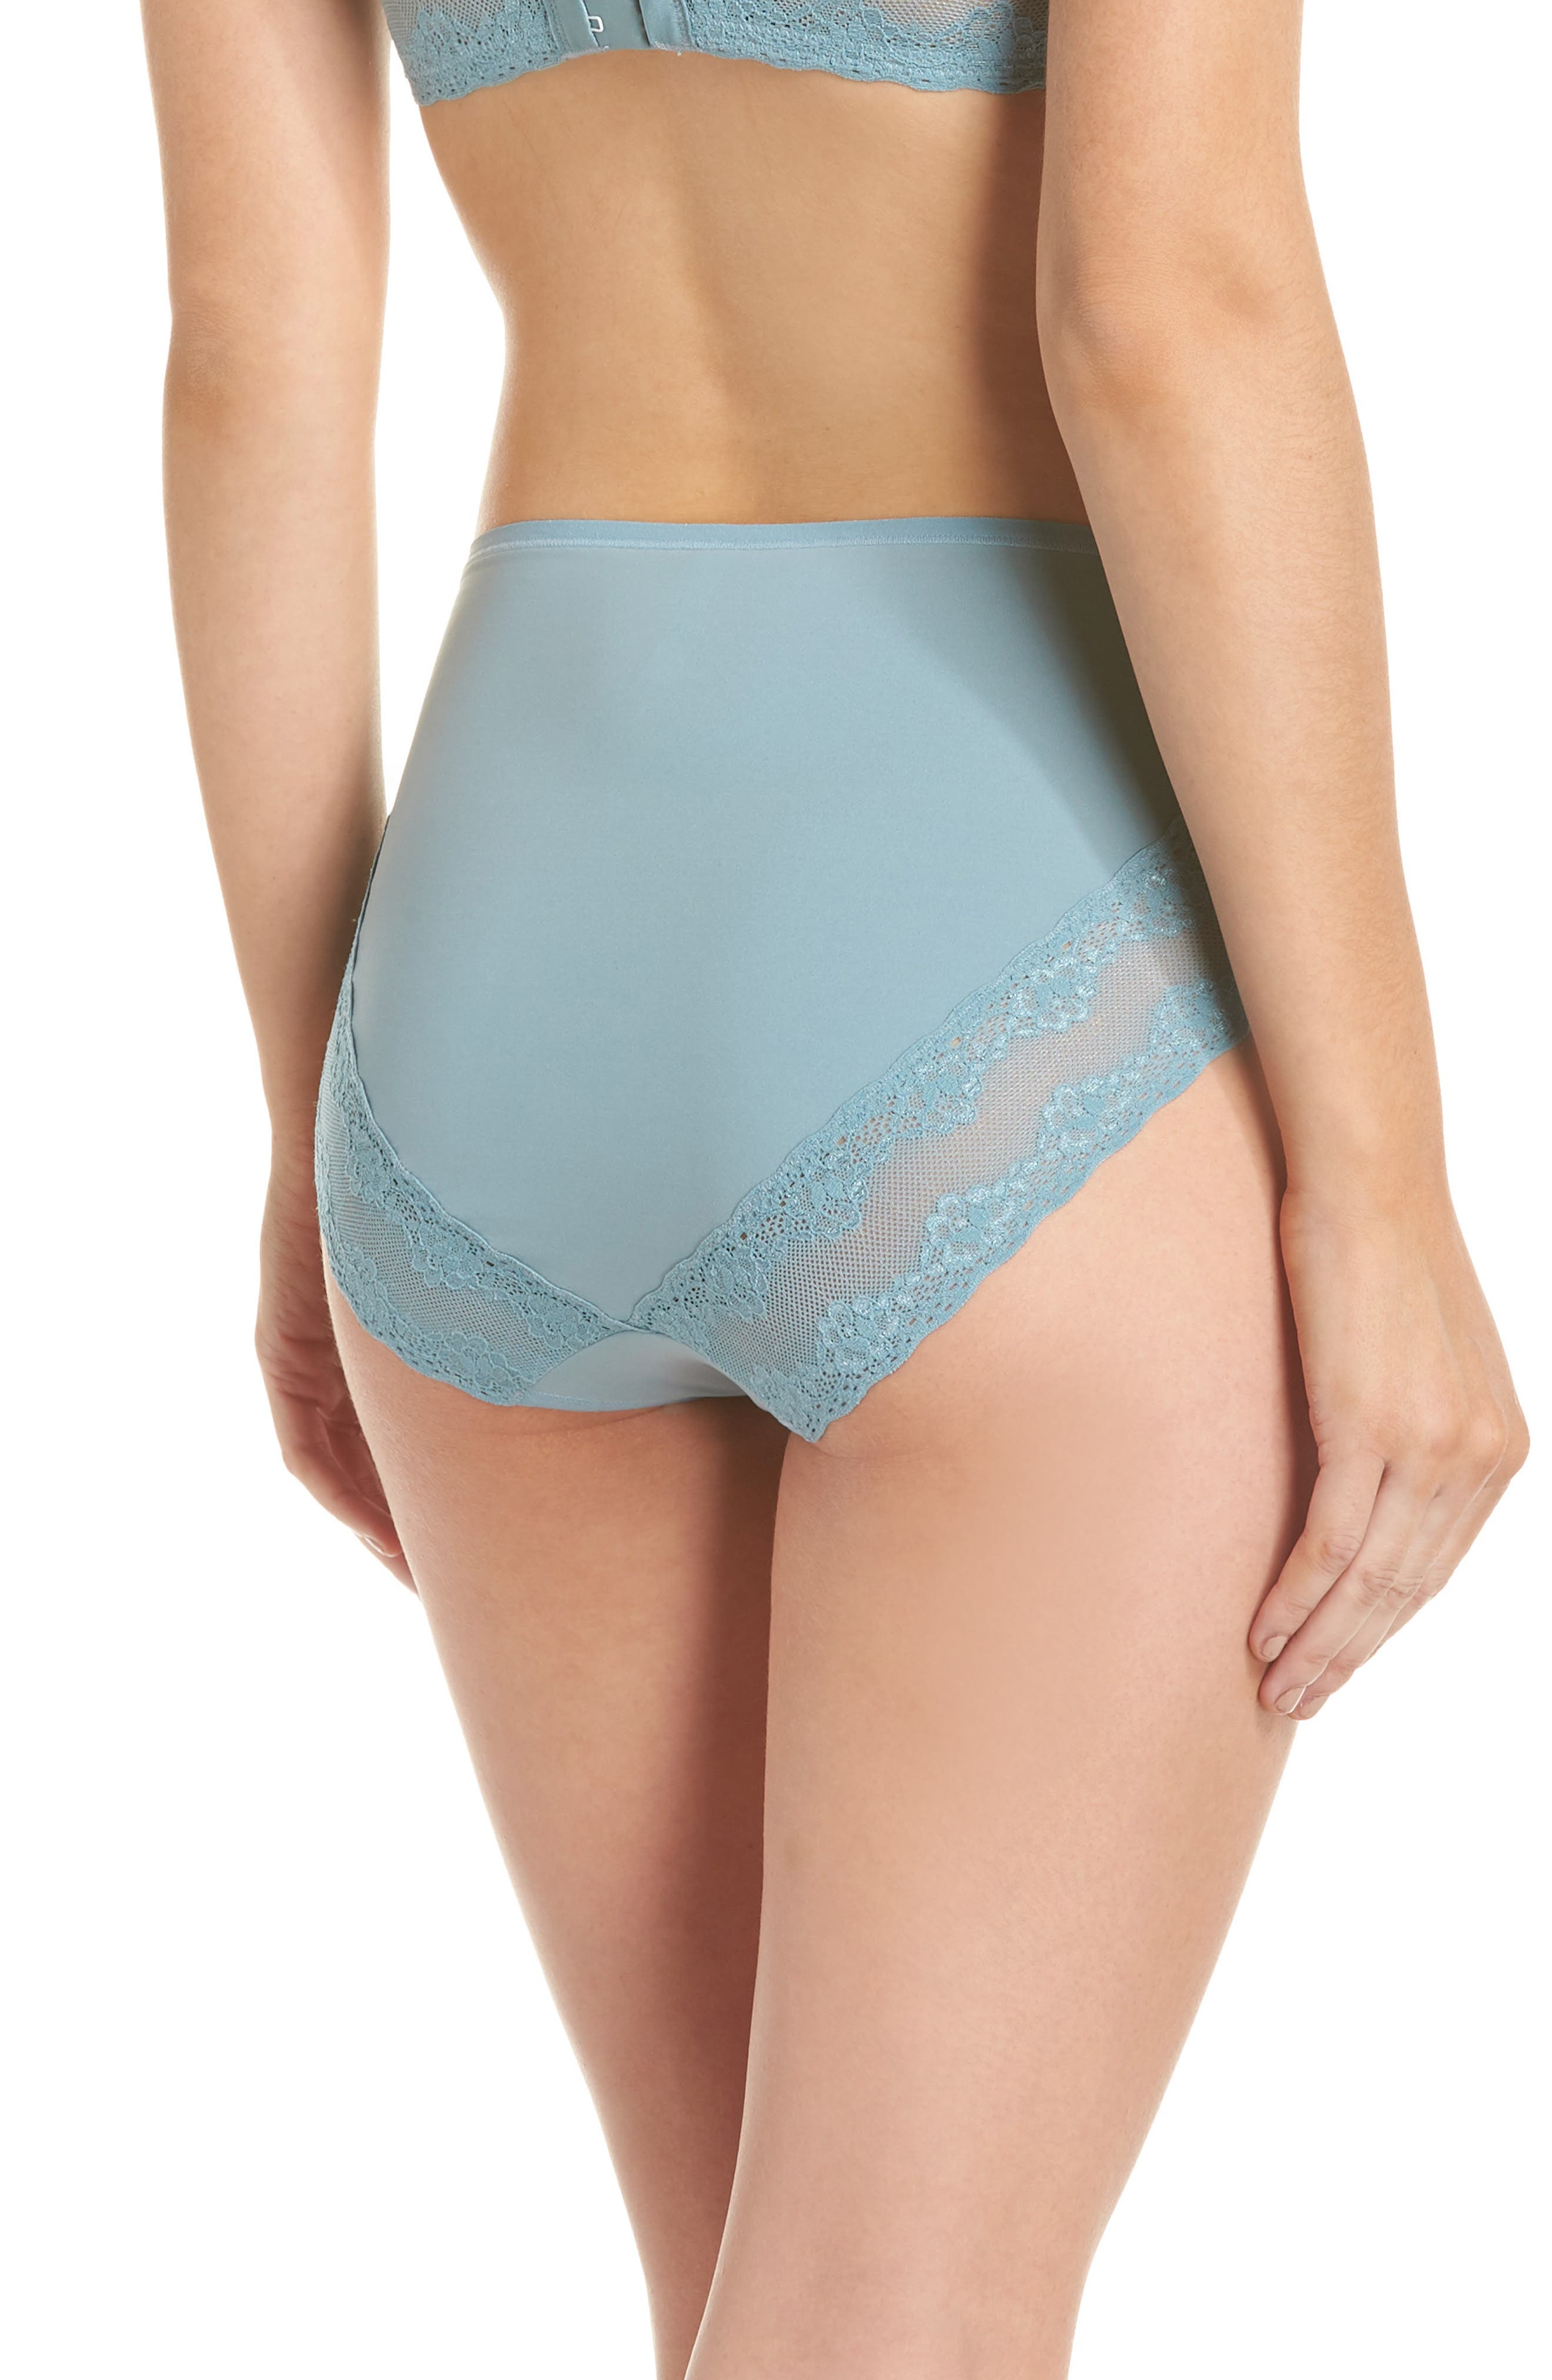 Bliss Perfection French Cut Briefs,                             Alternate thumbnail 2, color,                             SMOKE BLUE